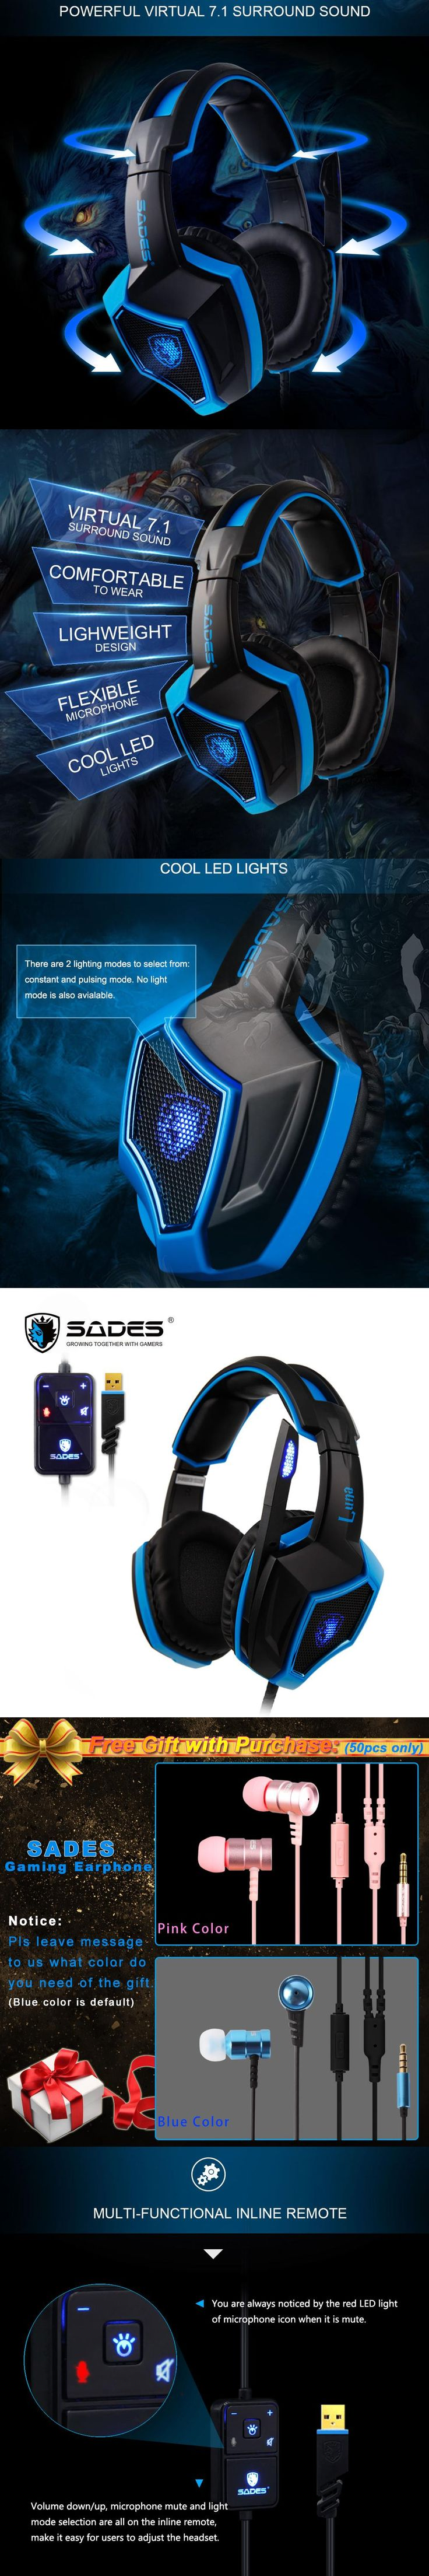 SADES LUNA Virtual 7.1 Surround Sound headphones Rotatable Microphone Multifunctional In-line Remote Headset for Gamer